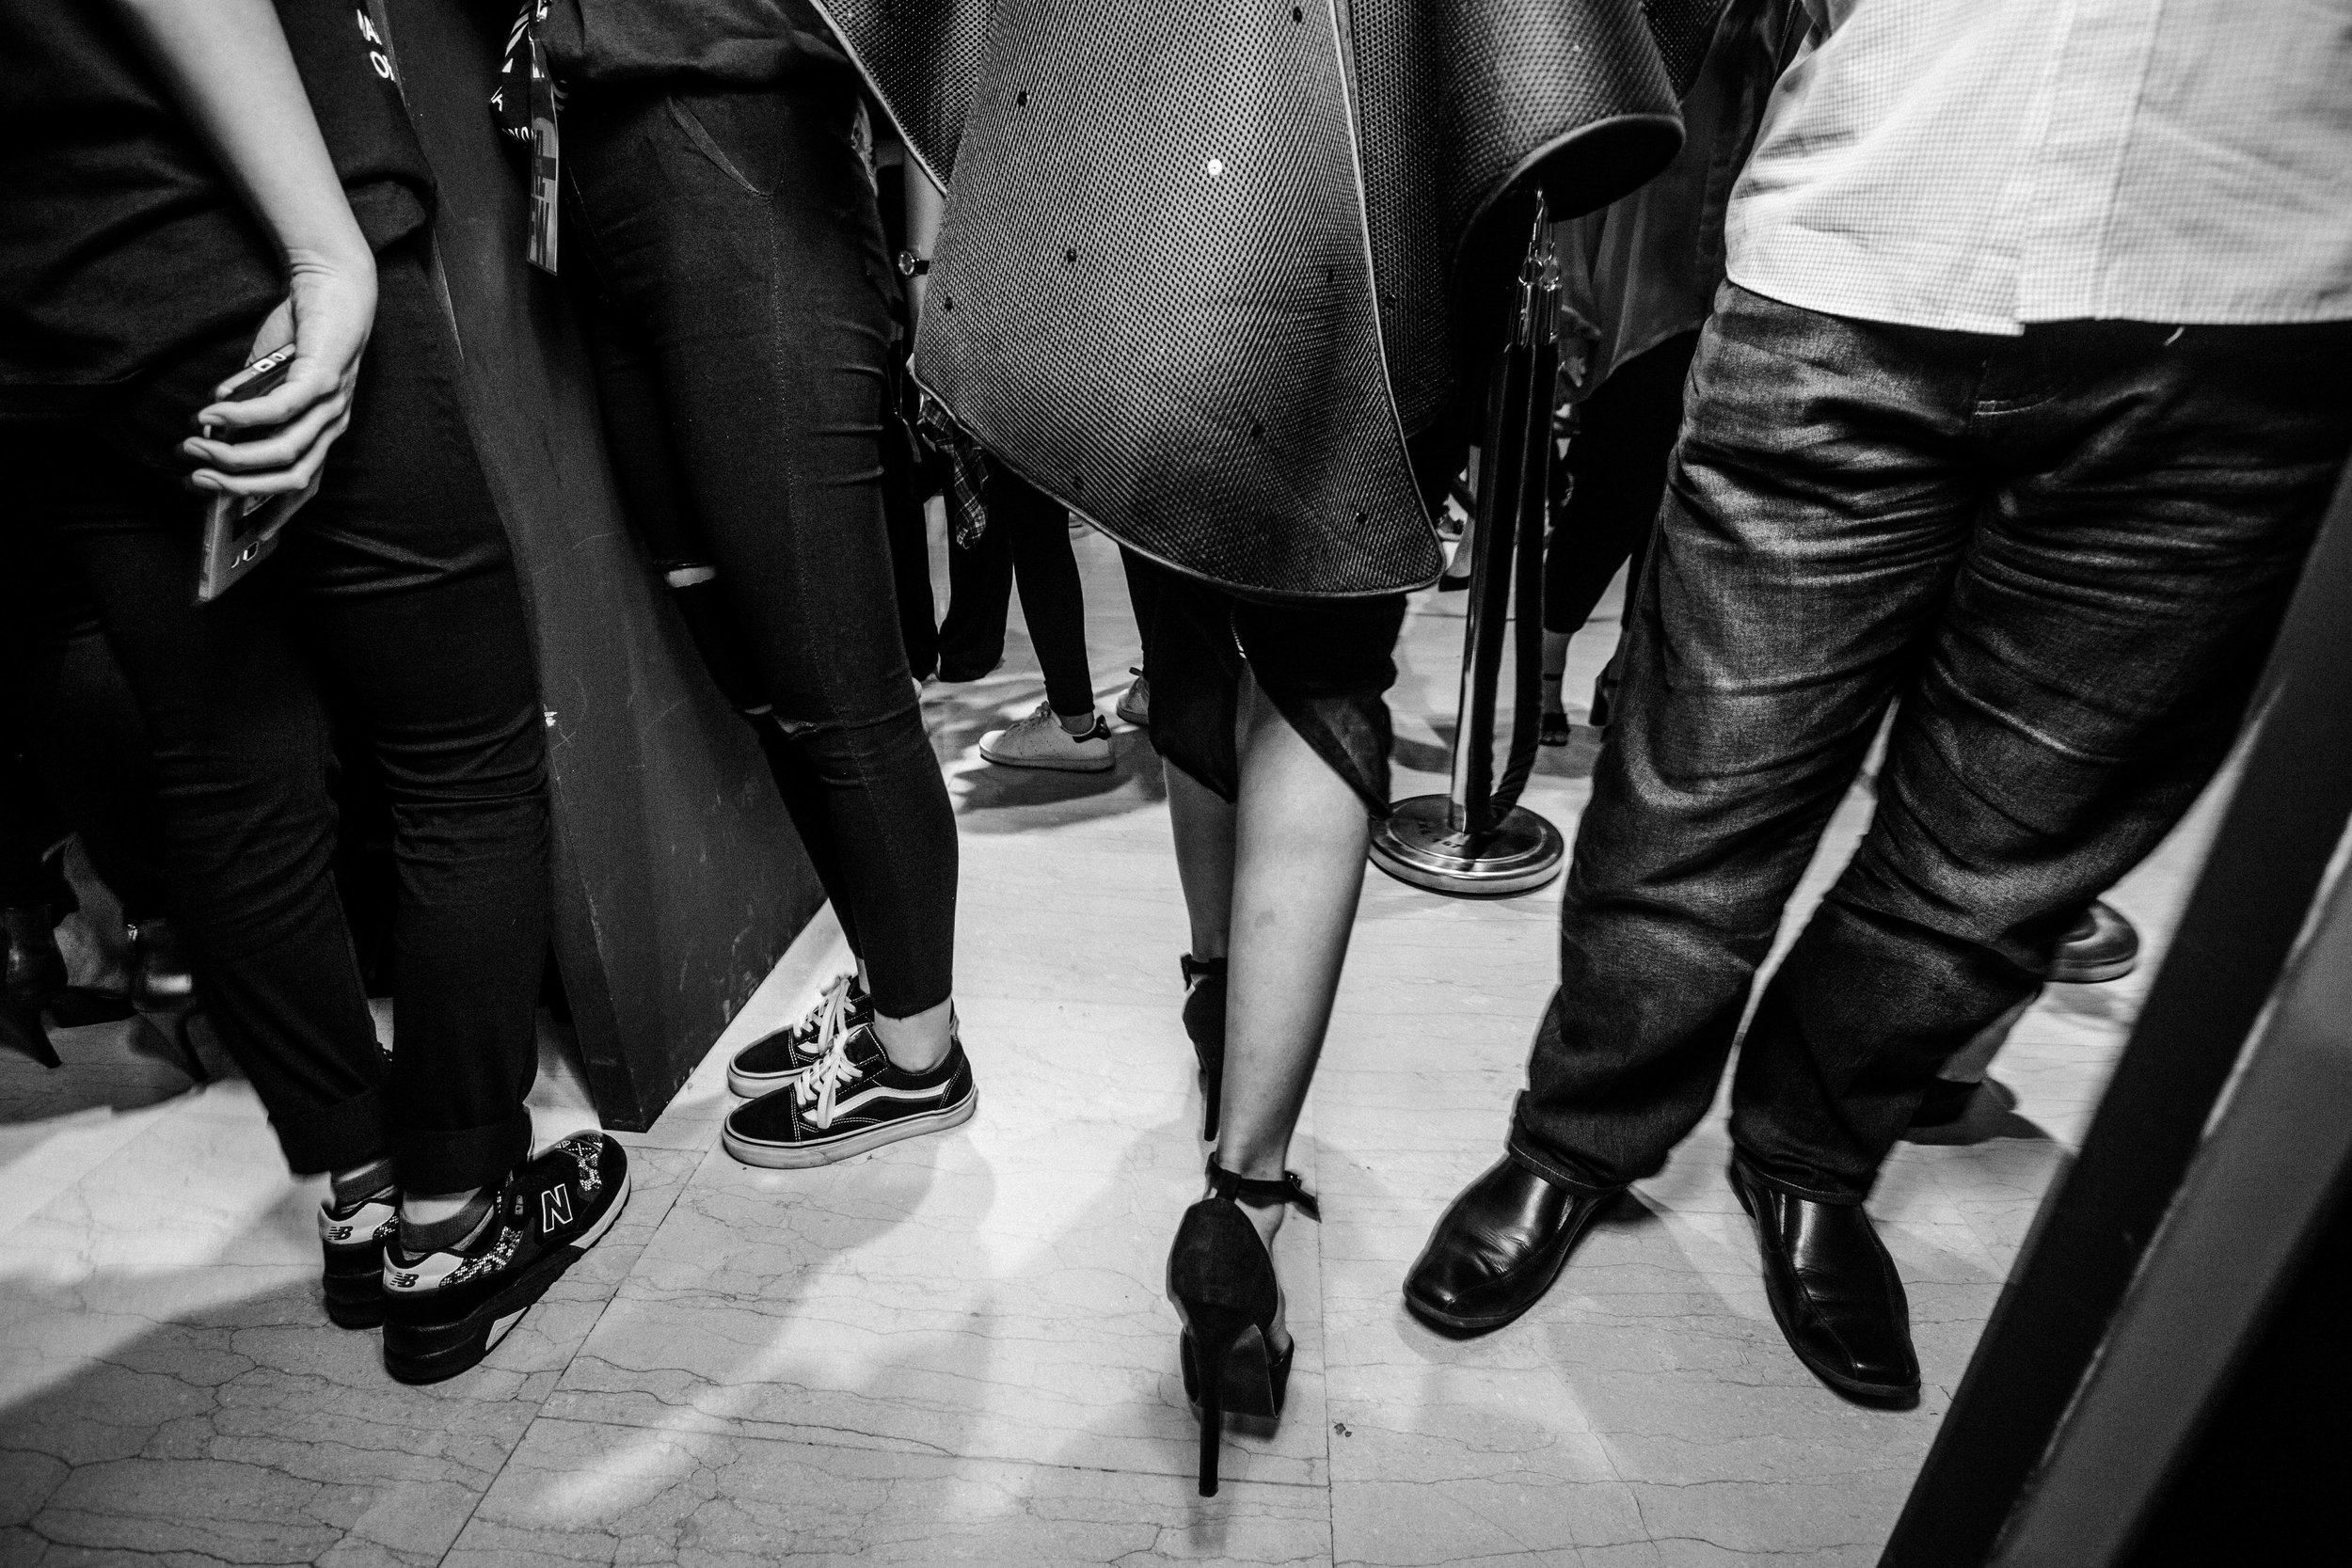 KLFW 2016 - Day 2 - AIA_5536 - Photo by All Is Amazing.jpg